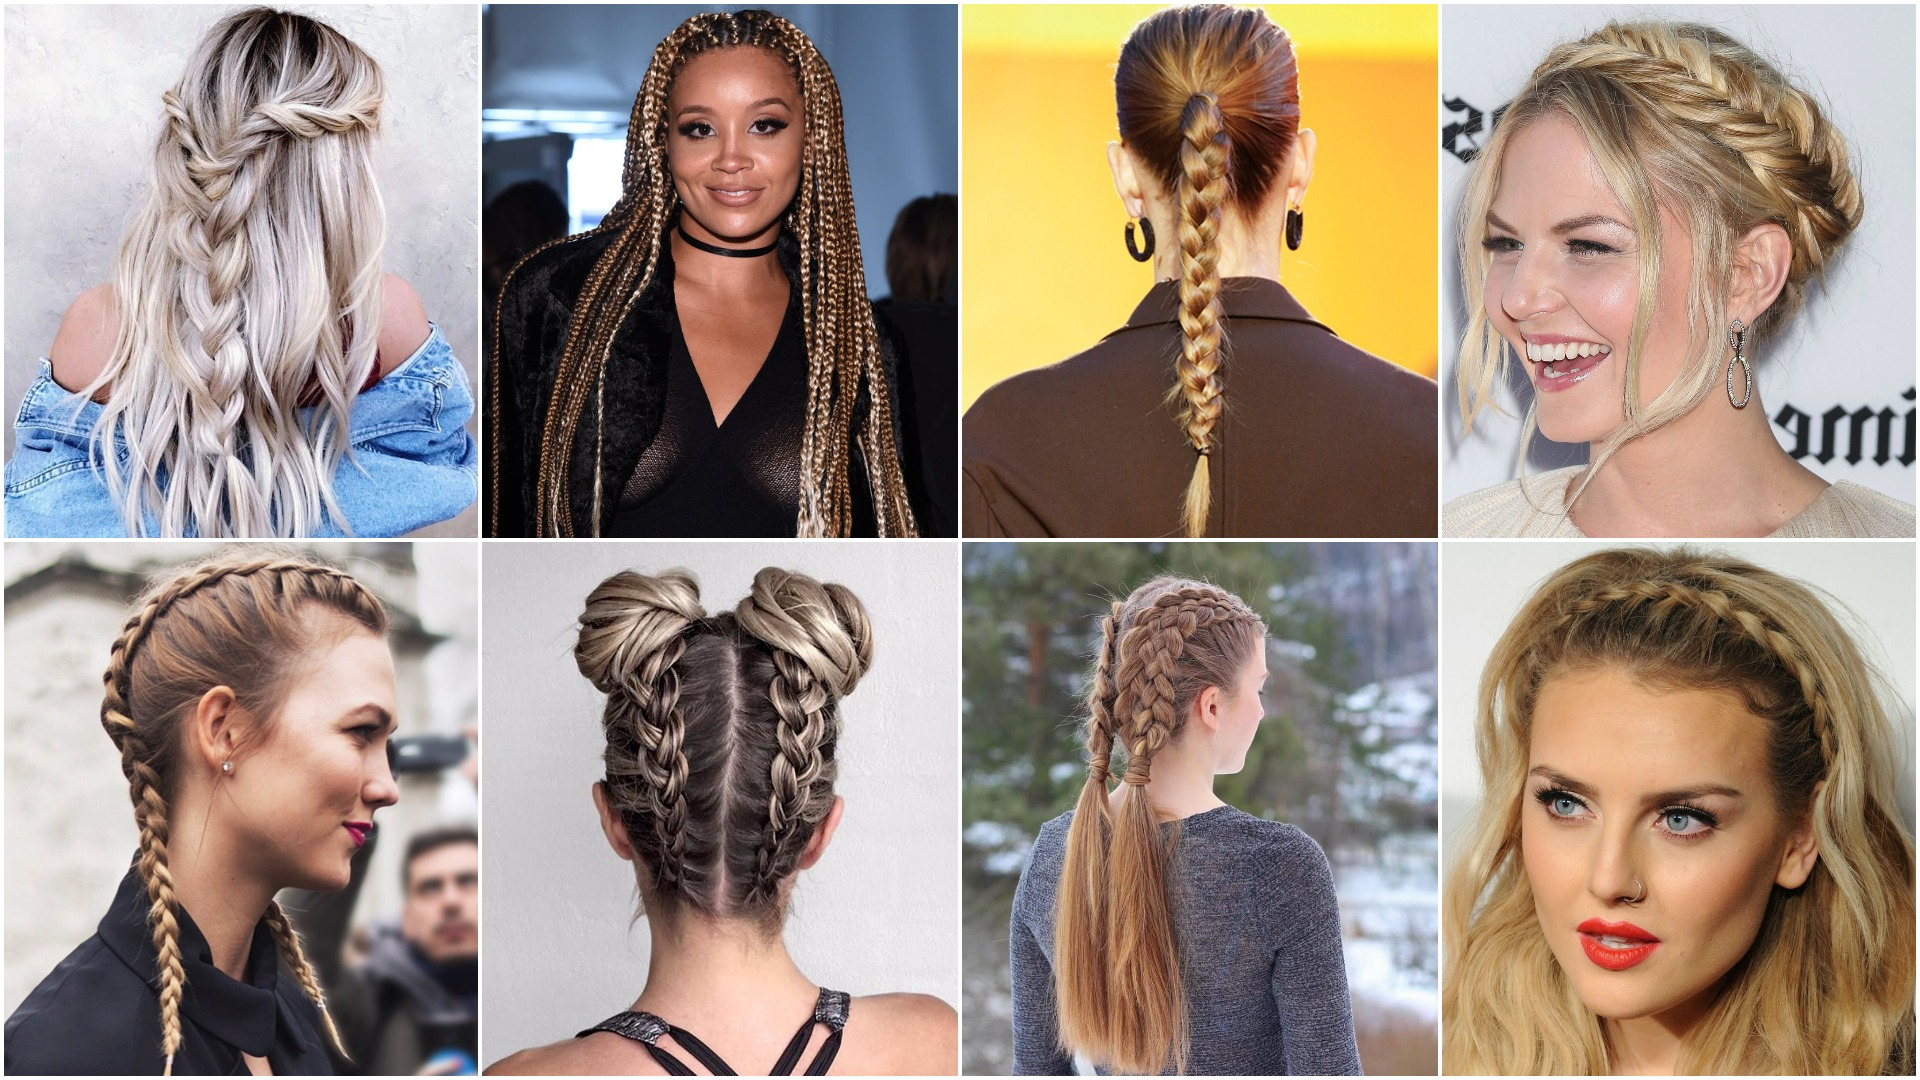 40 Different Styles To Make Braid Hairstyles For Women Intended For Most Popular Loose Braided Hairstyles With Turban (View 8 of 20)